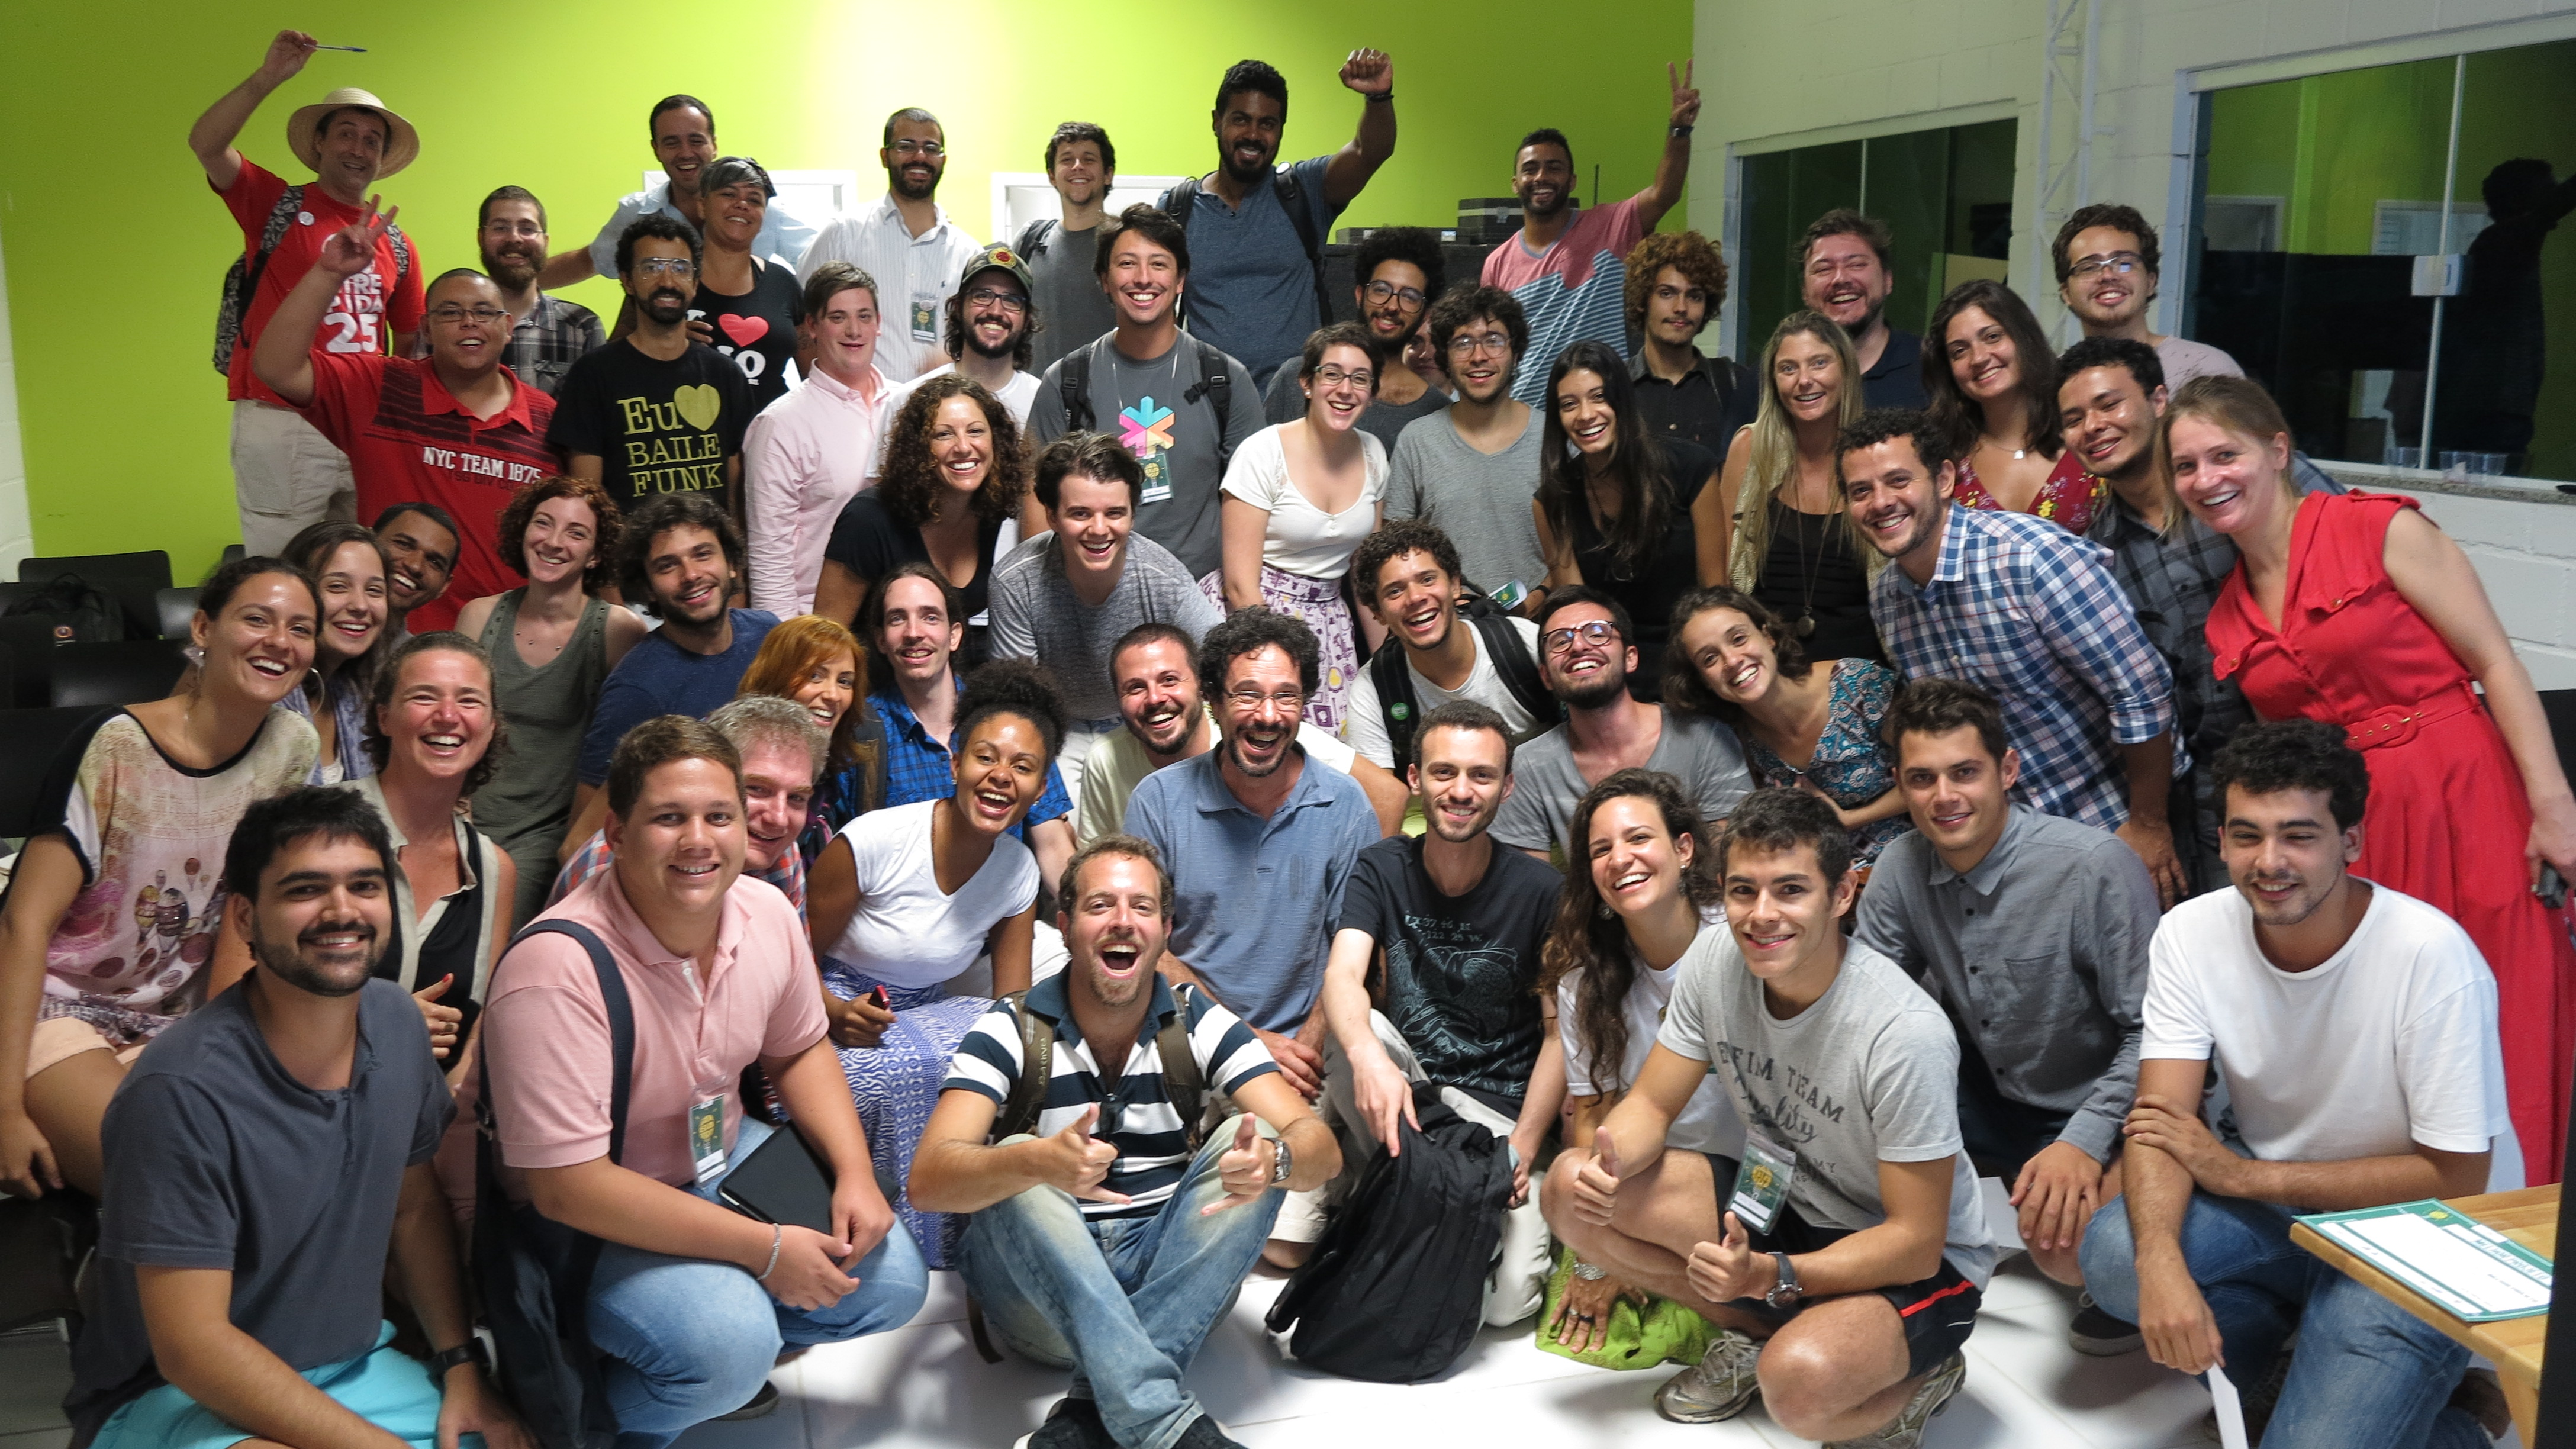 The 36 Rio based designers, engineers, makers, and thinkers along with our crew.